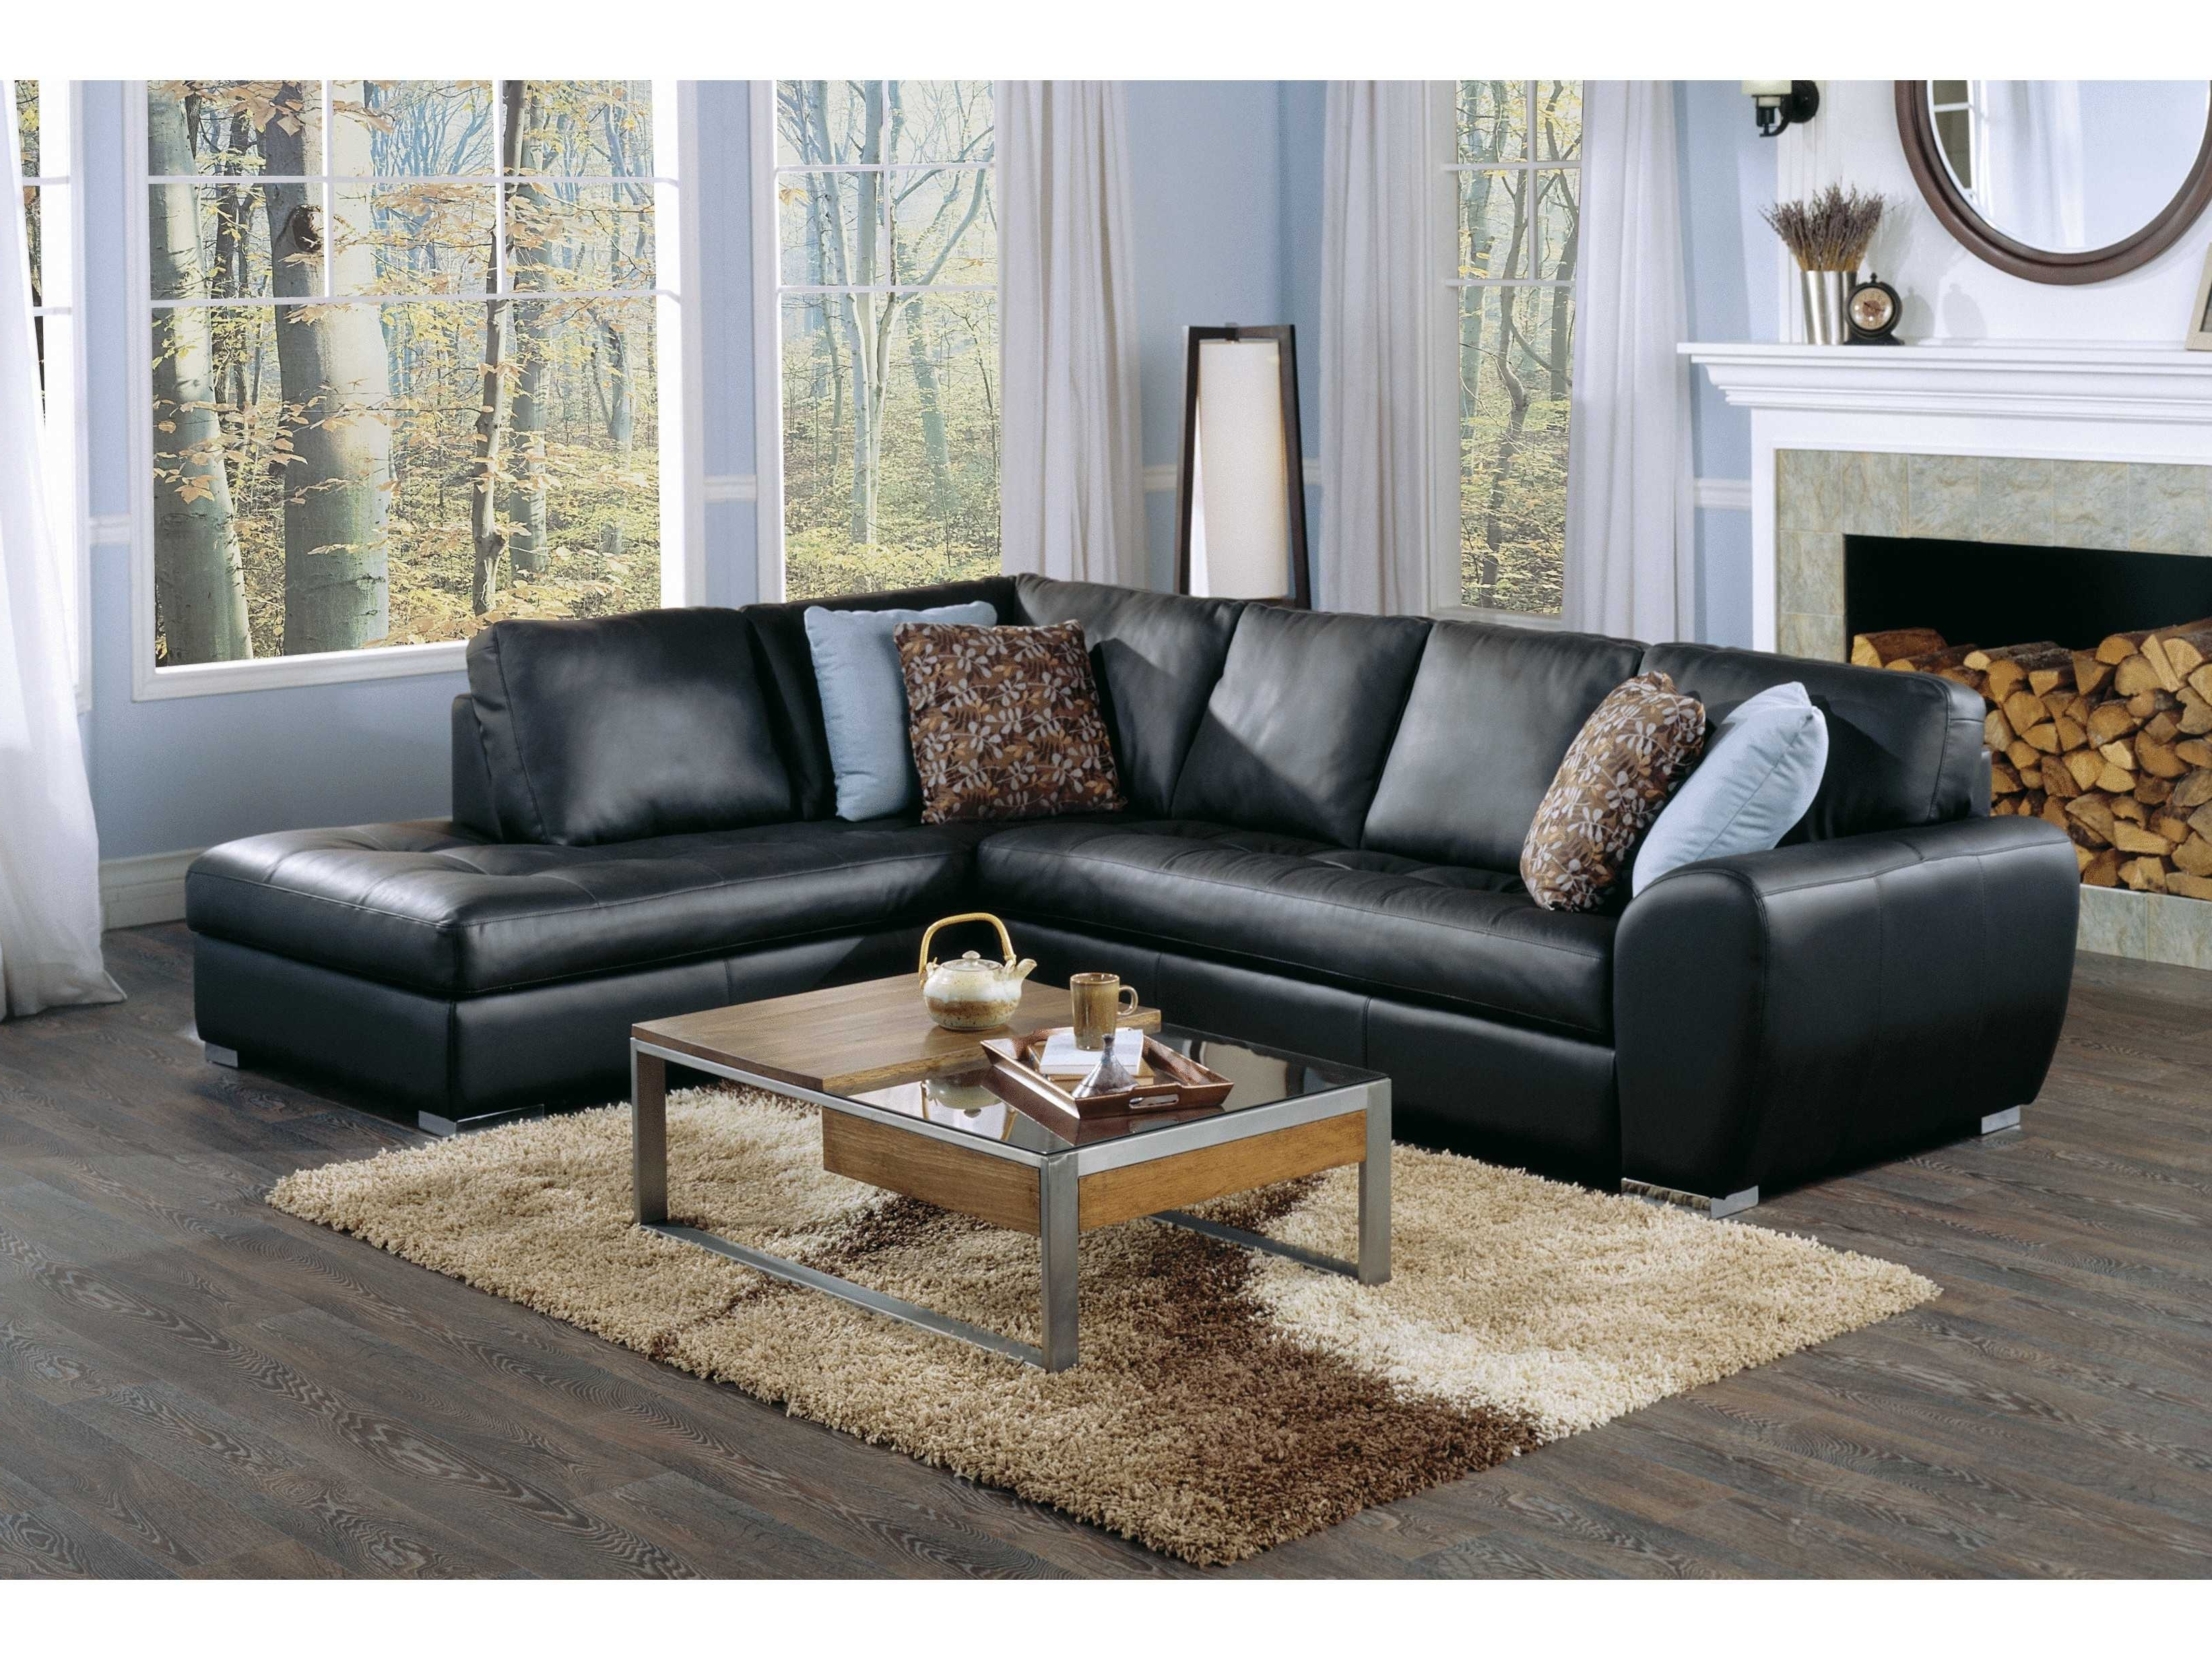 Sofa Bed Ebay Peterborough 25 Lovely Sectional Sofas Peterborough Ontario